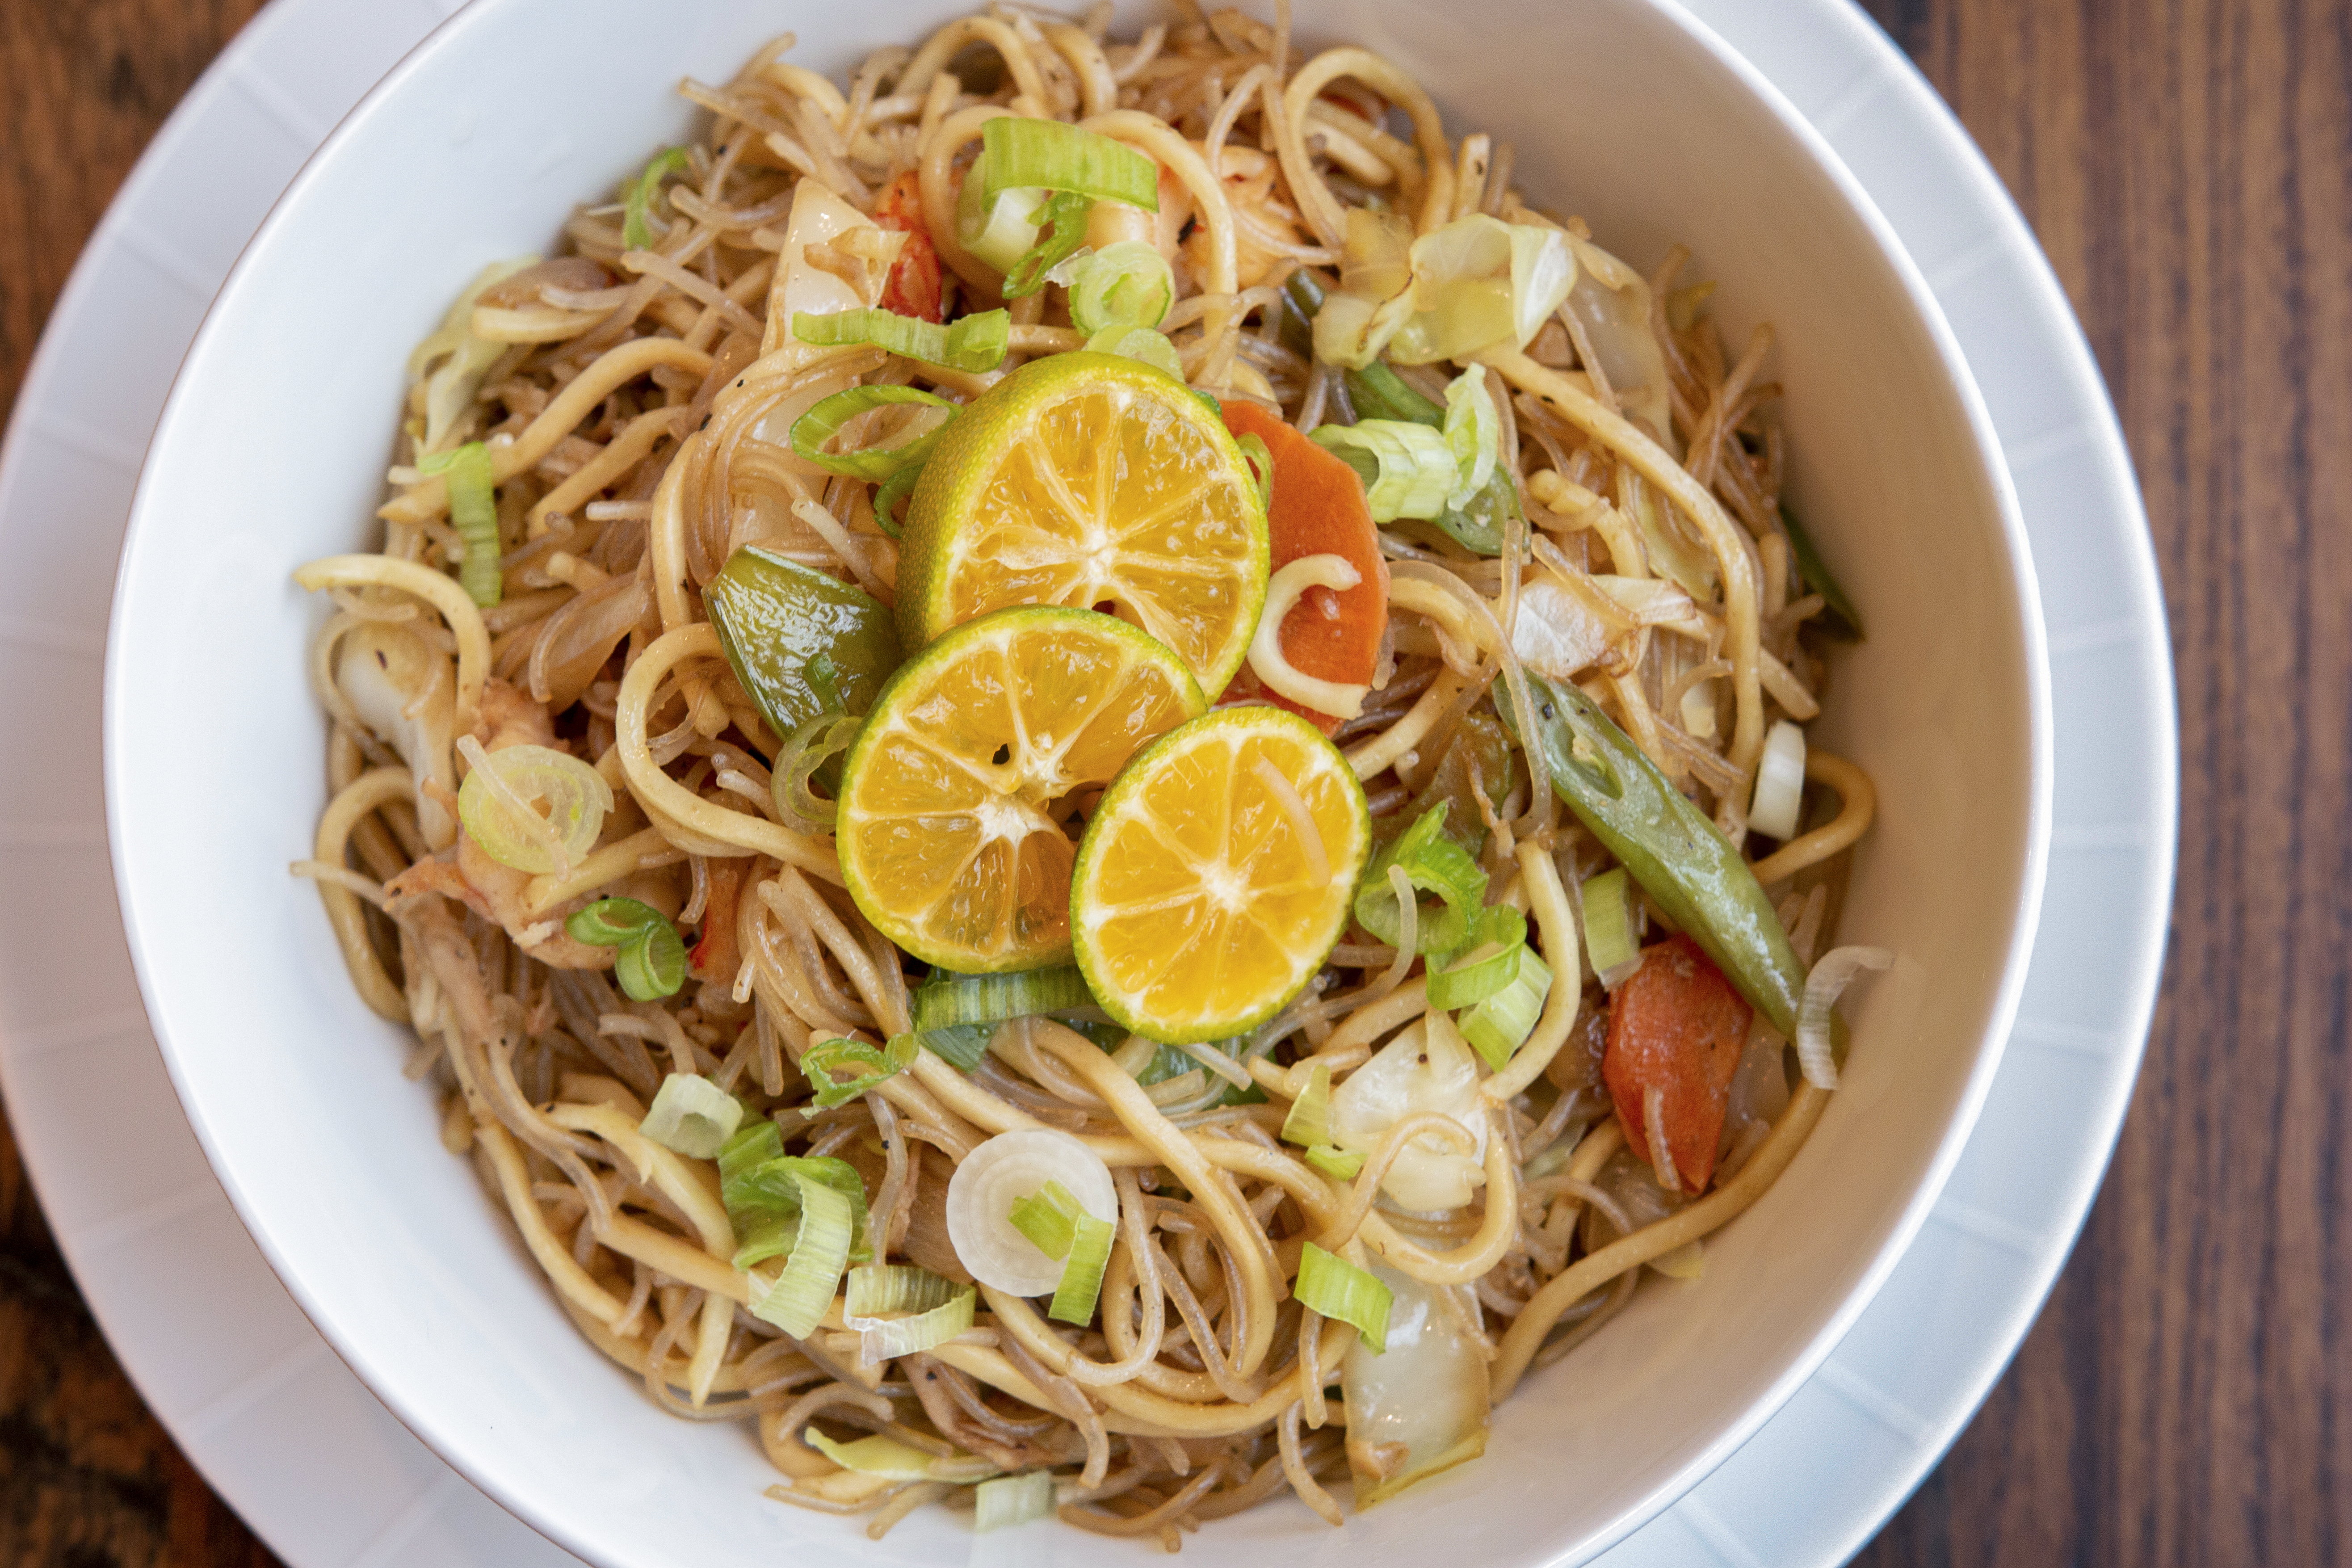 A bowl of pancit or Asian vermicelli sauteed in a wok with assorted vegetables, garnished with green onions and three slices of lemon